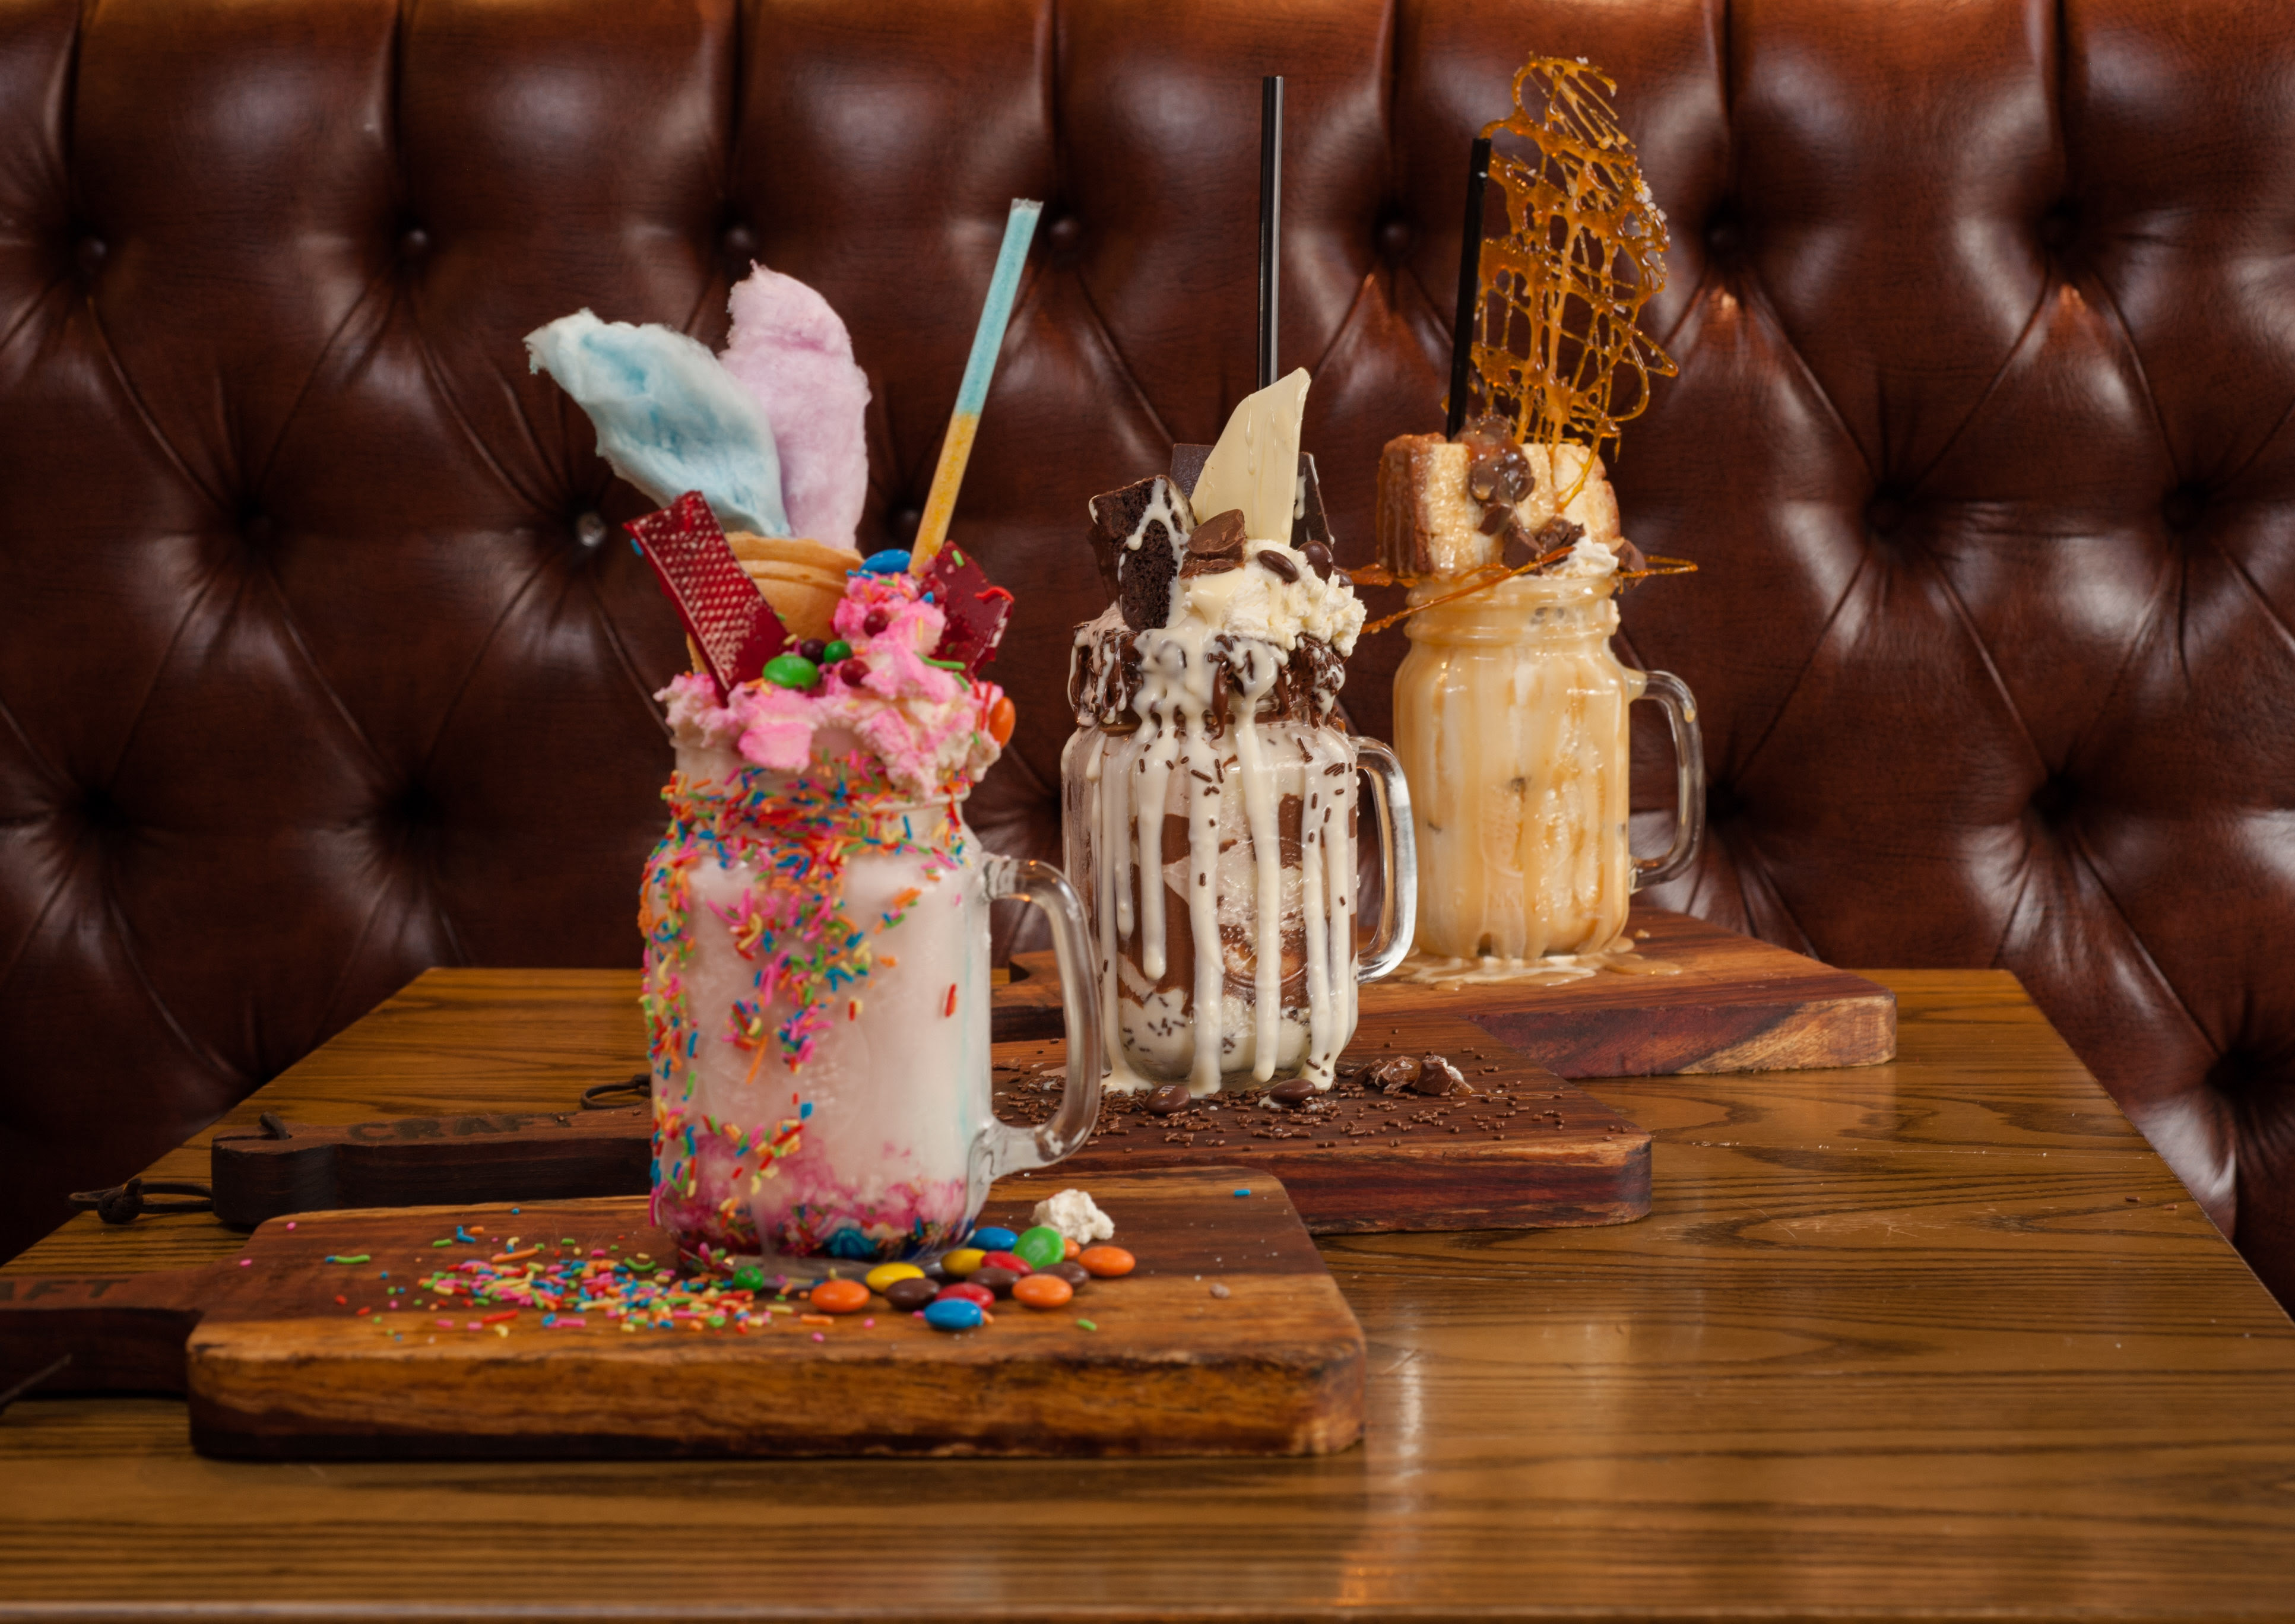 CRAFT Freakshakes - The Candy Carnival, Chocolate Overload & Salted Caramel Delight 9image courtesy of Craft)